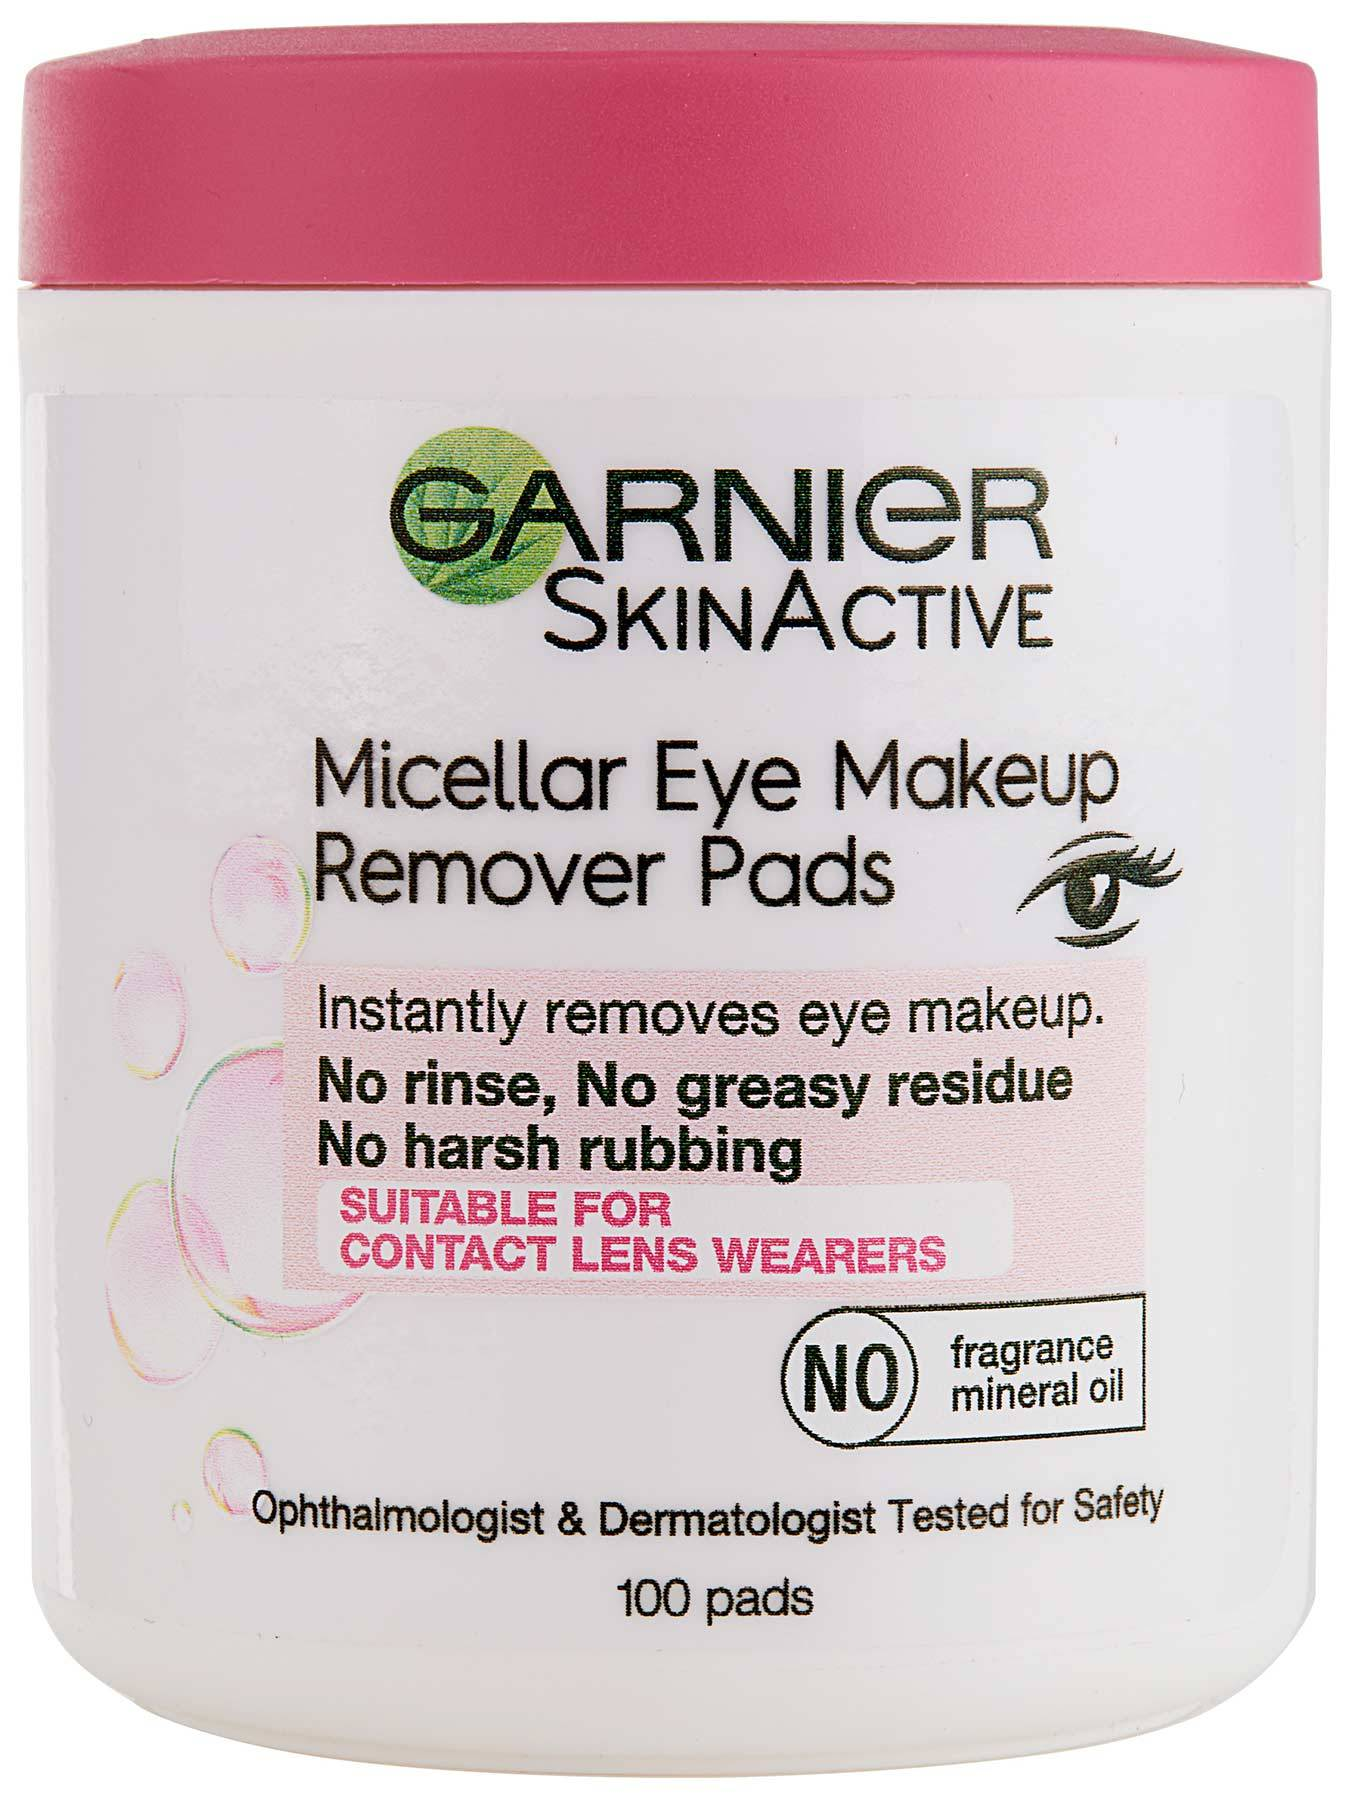 Facial Cleansers - Skin Care Products For All Skin Types - Garnier